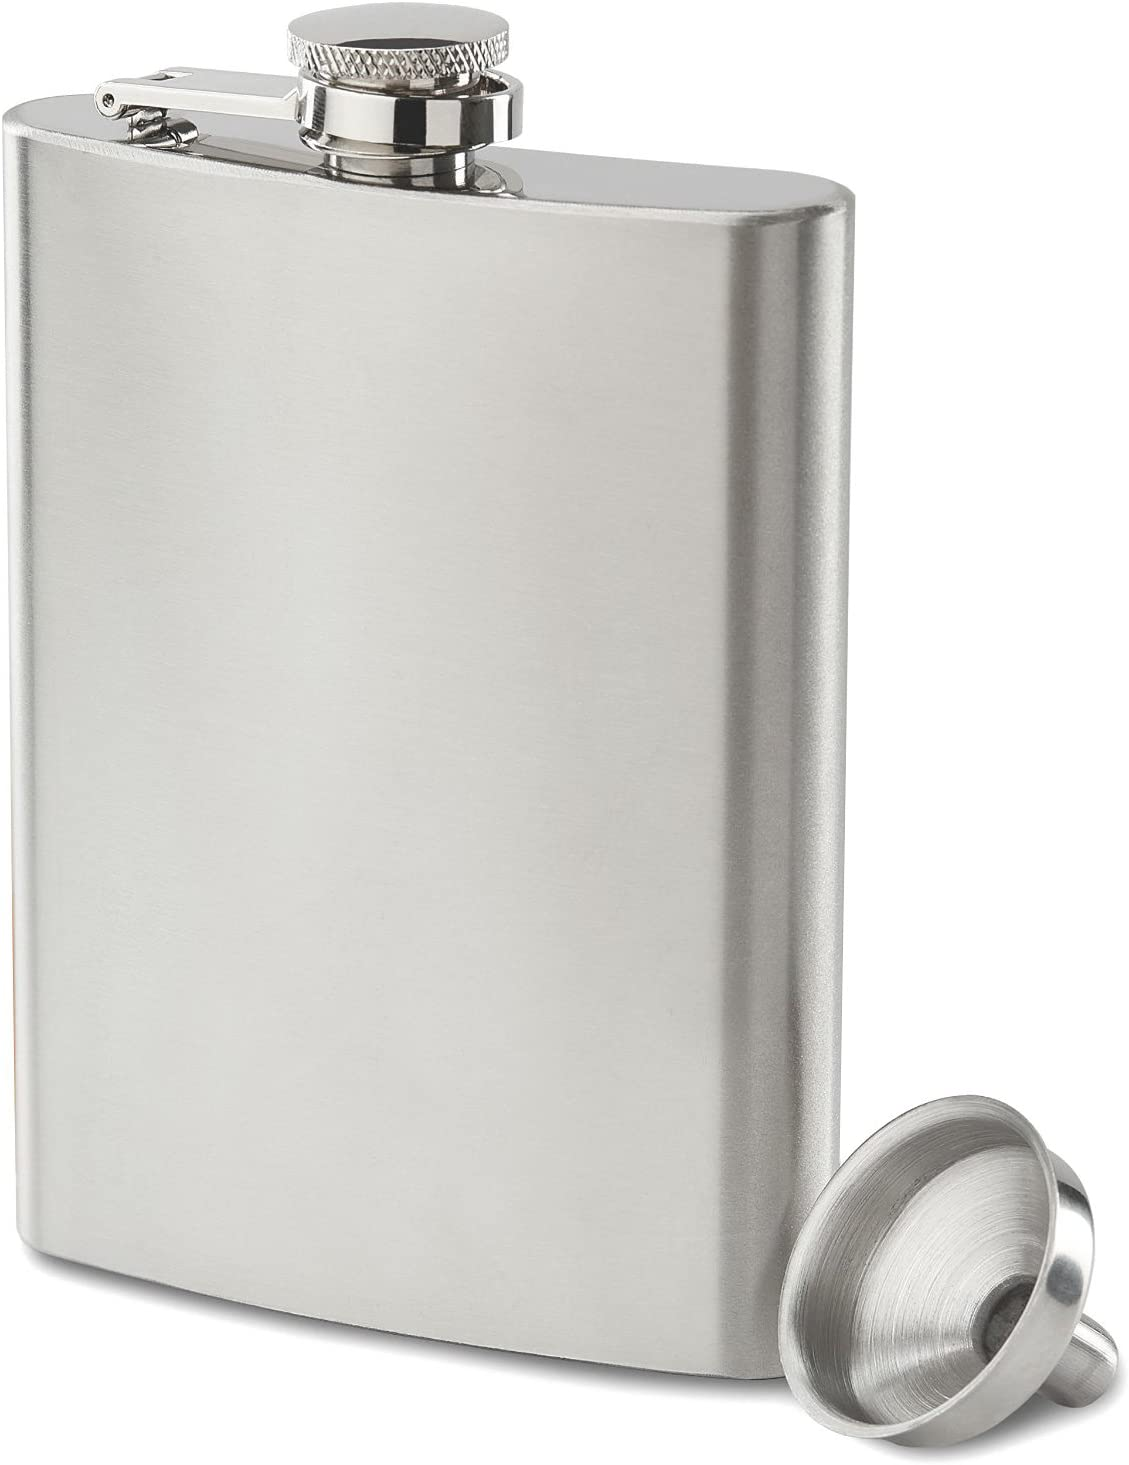 Future Hydrate 304 (18/8) Stainless Steel Leak Proof Liquor Hip Flask with Funnel and Gift Box, 8 oz